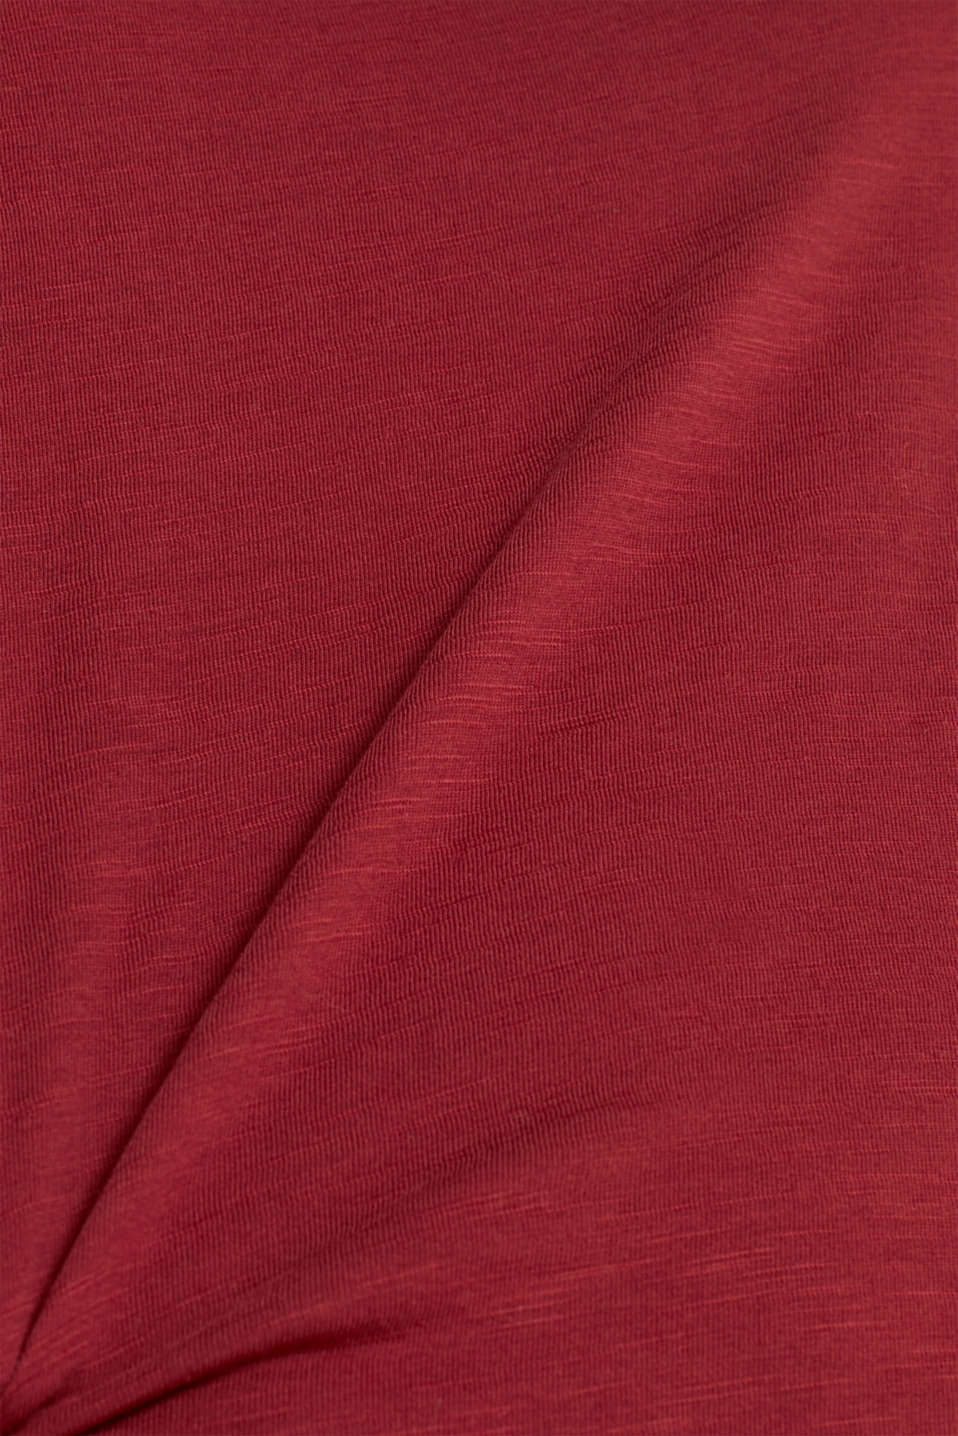 Long sleeve top with a large neckline, 100% cotton, GARNET RED 5, detail image number 4